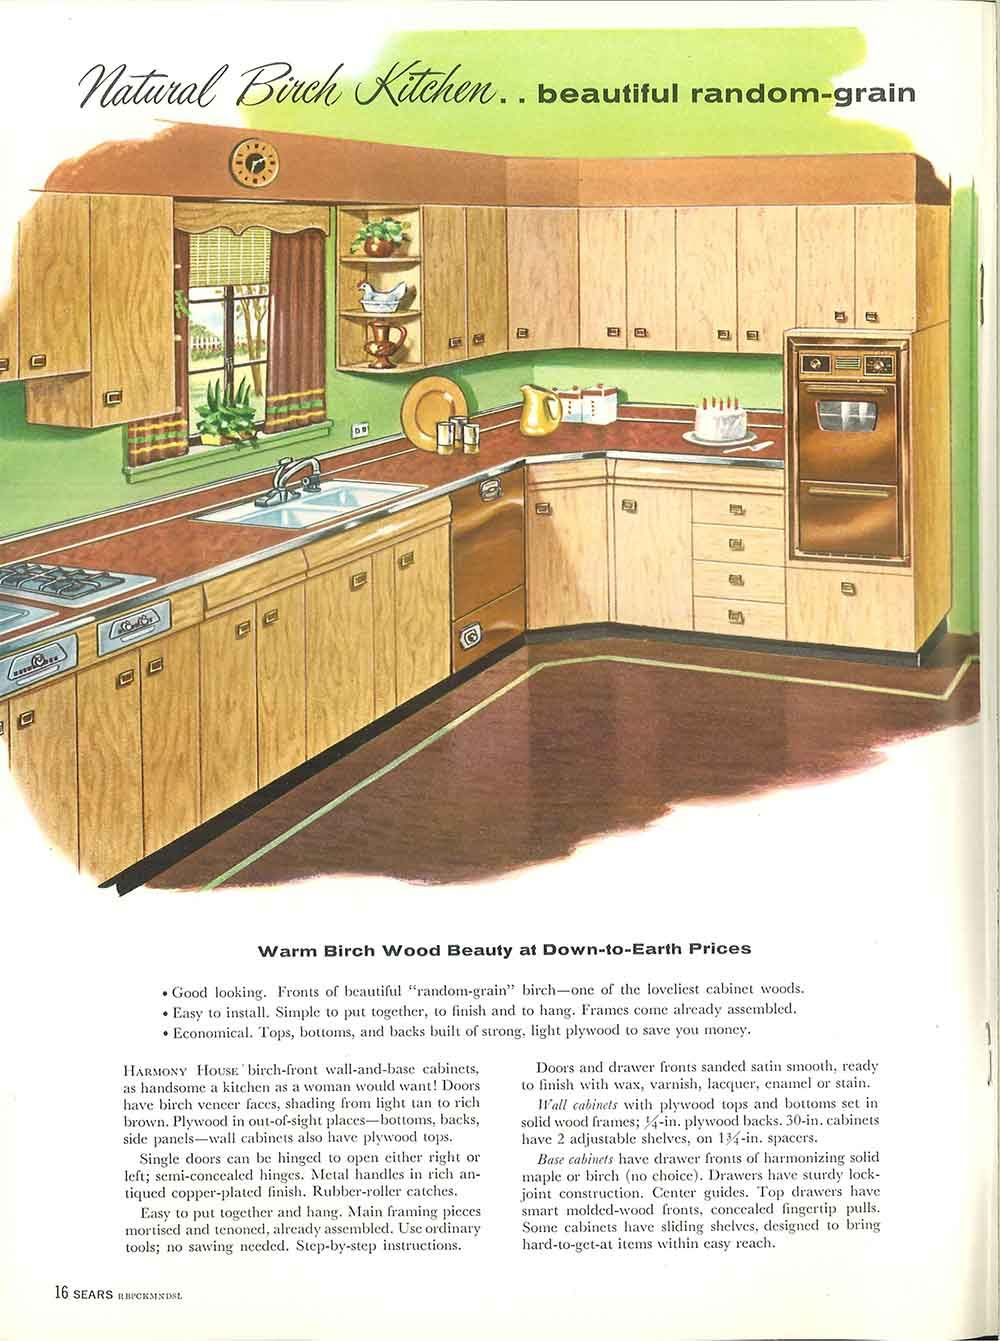 1958 Sears Kitchen Cabinets And More 32 Page Catalog Wood Cabinets Retro Appliances Home Improvement Catalog